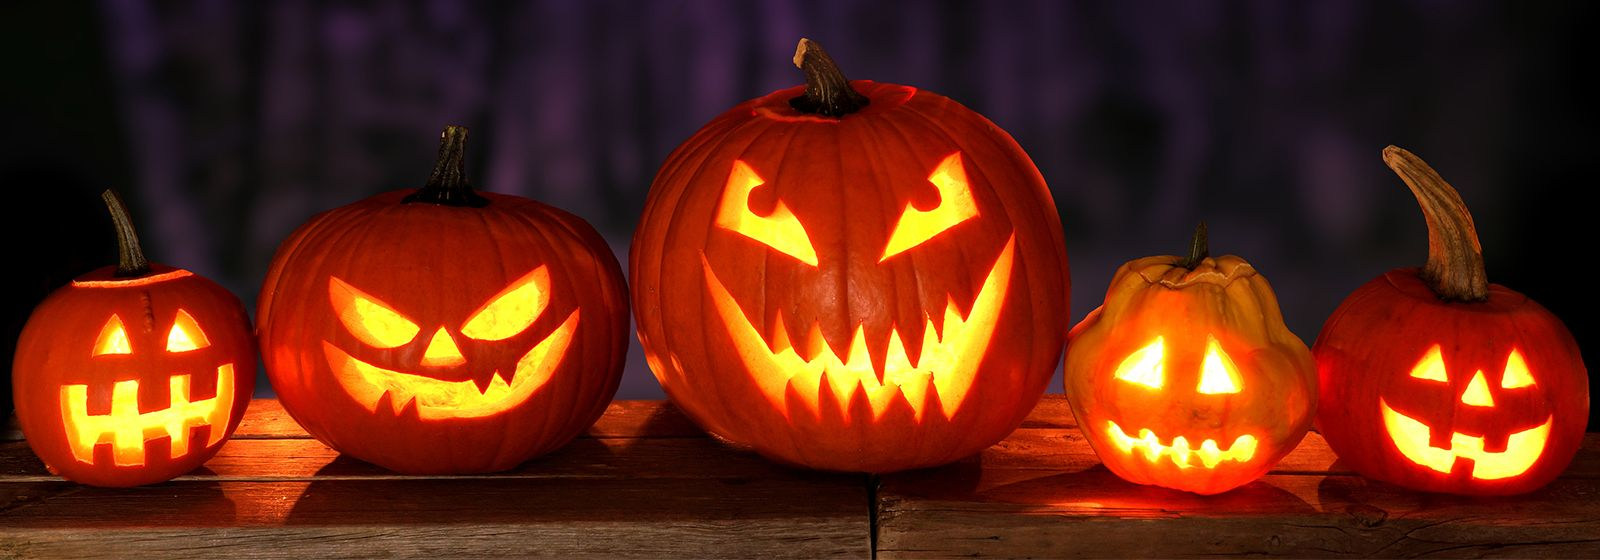 3 ways to make Halloween safe and spooky